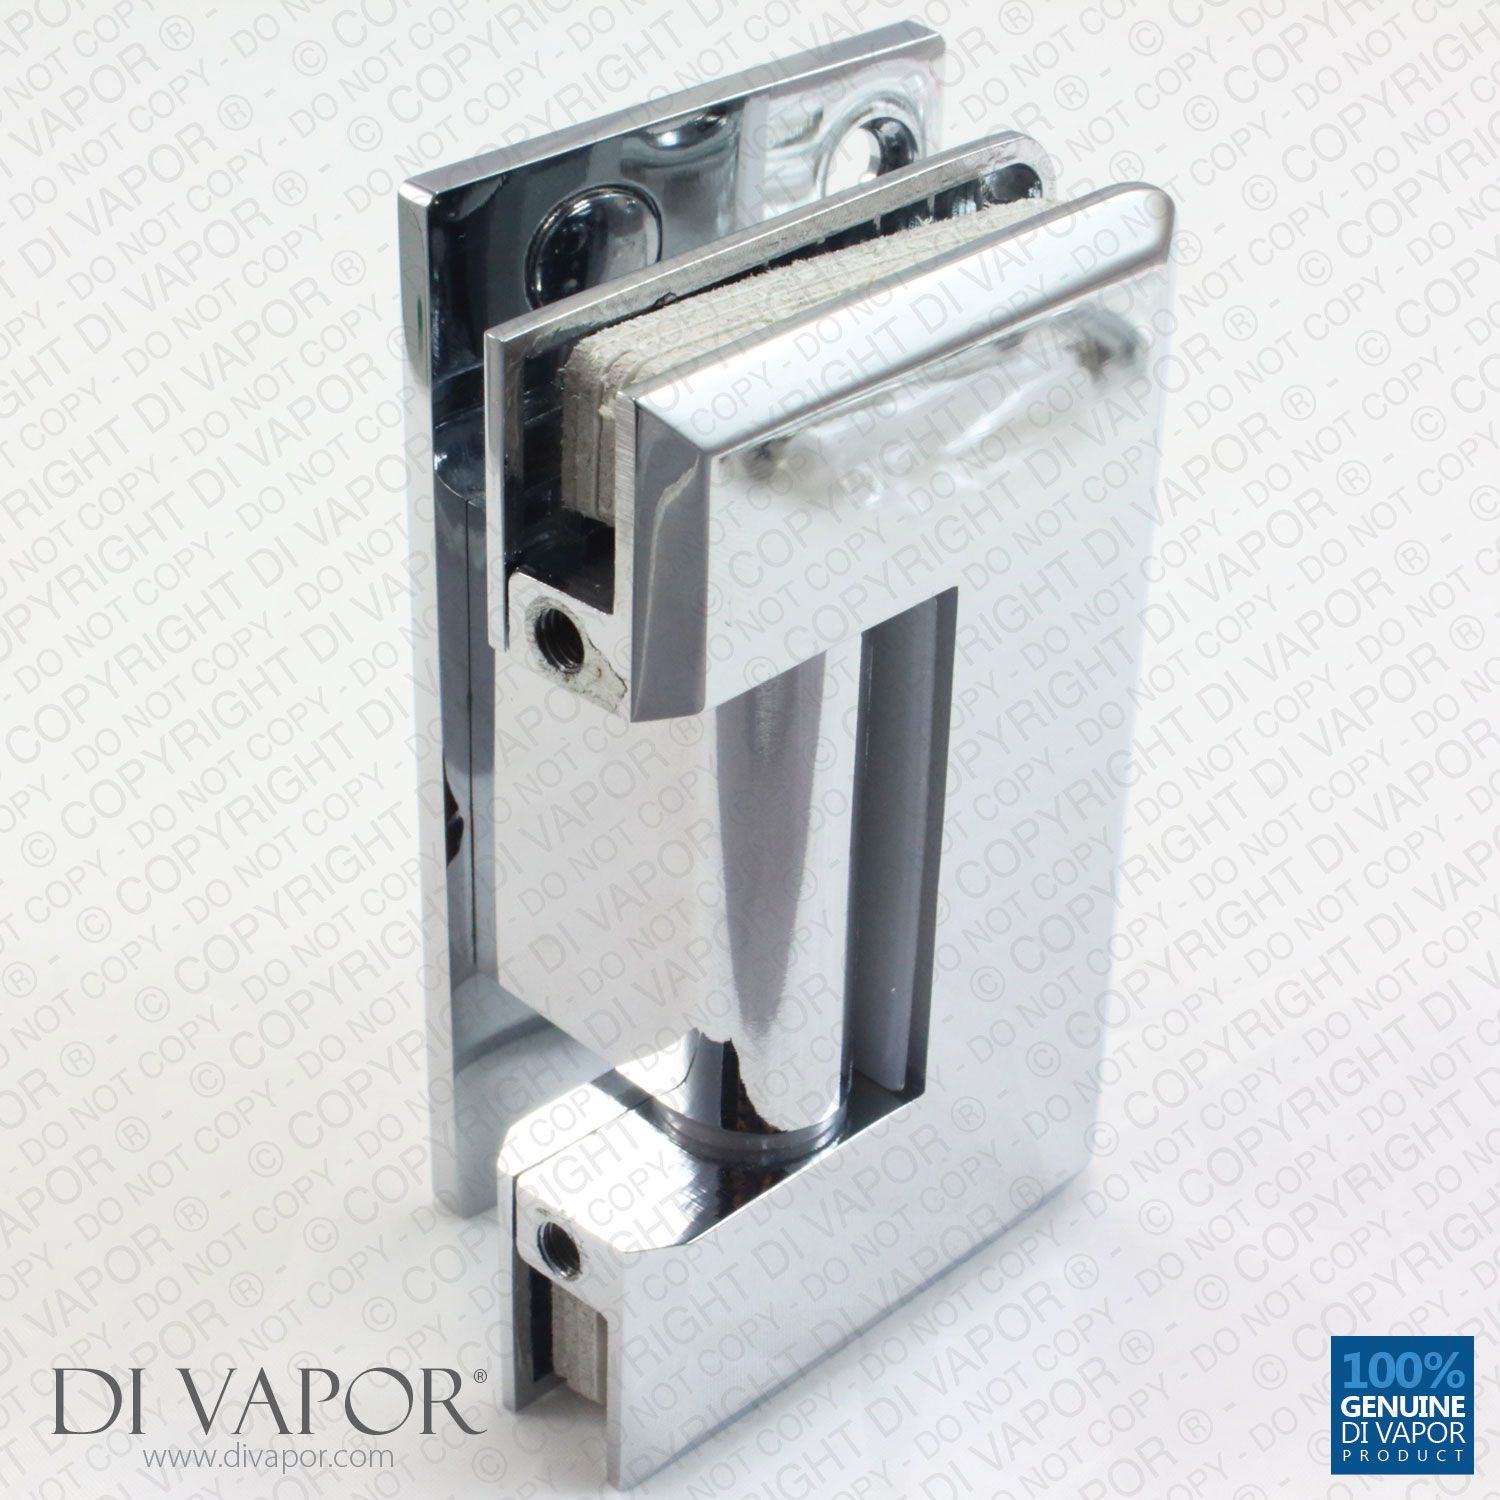 90 Degree Wall Mounted Shower Door Glass Hinge | Chrome Plated ...